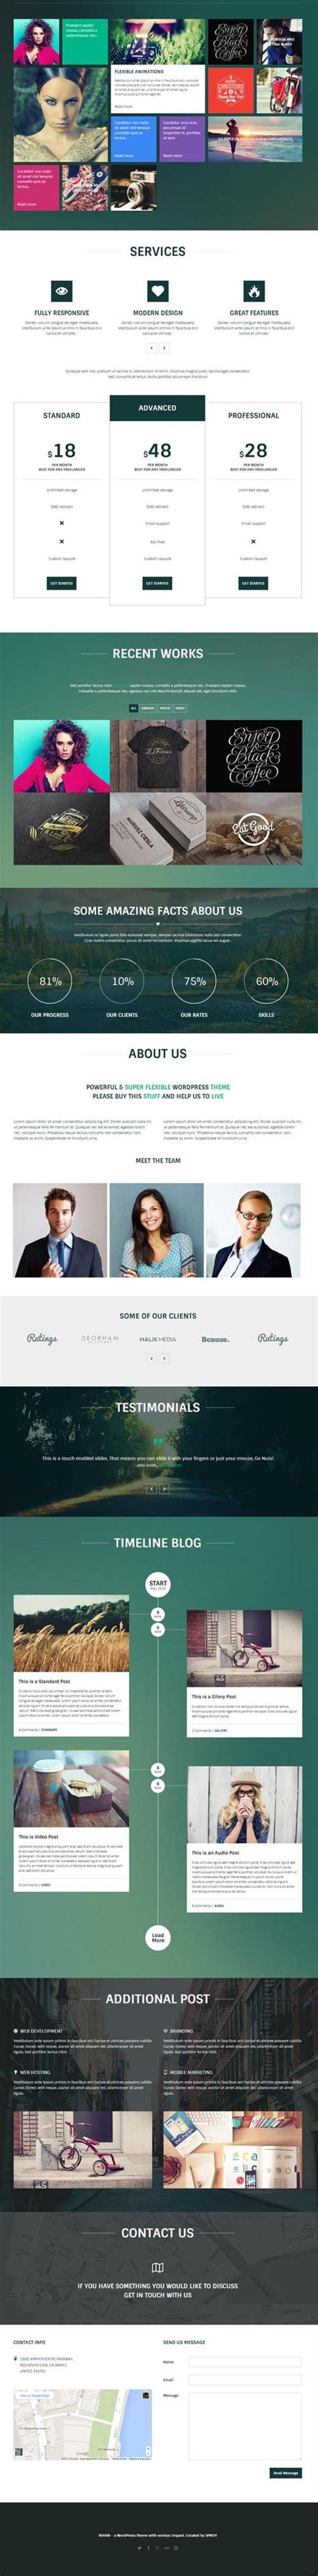 theme wordpress xone html5 wordpress themes wordpress themes graphic design